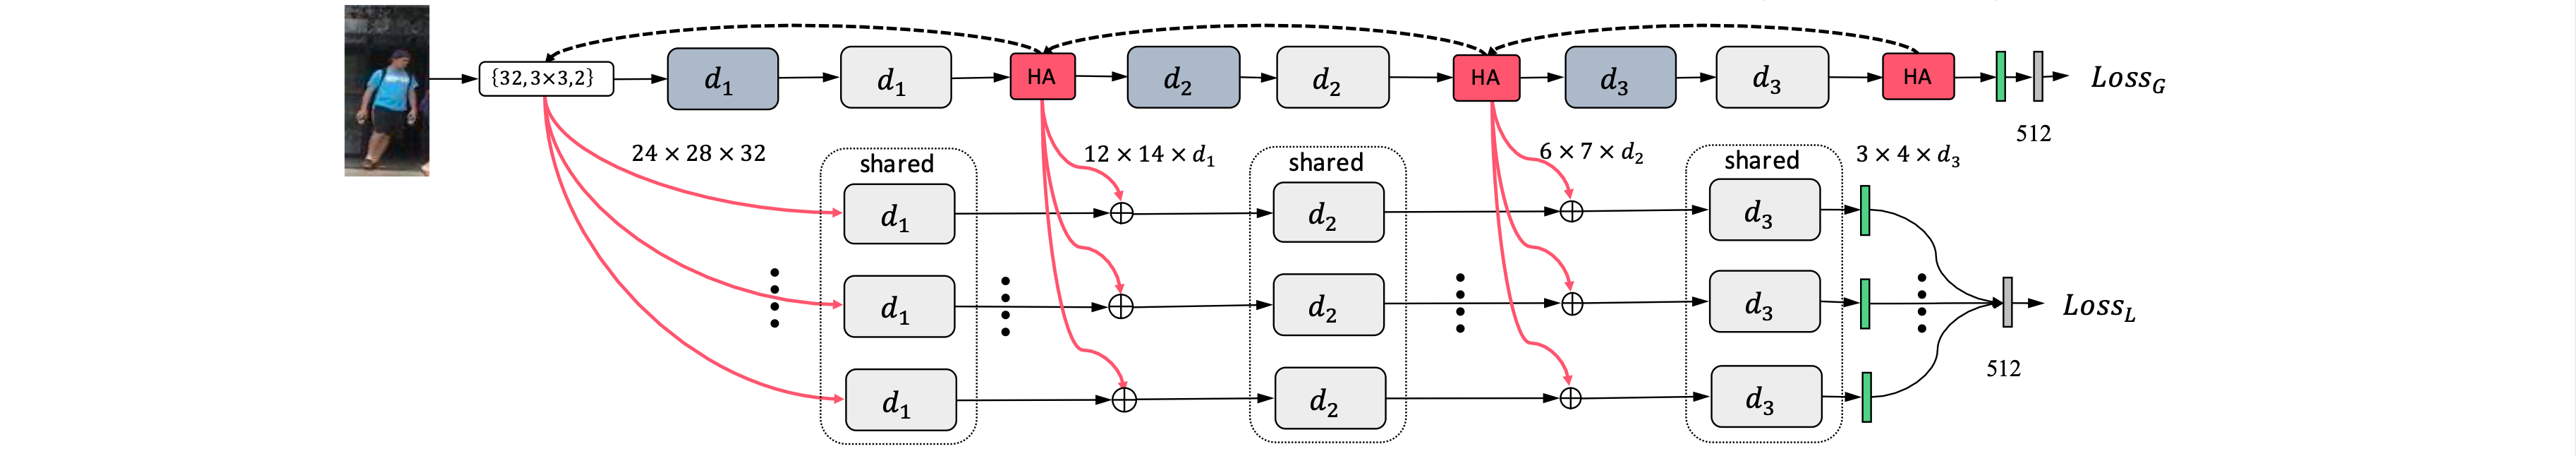 Transferable Joint Attribute-Identity Deep Learning for Unsupervised Person Re-Identification